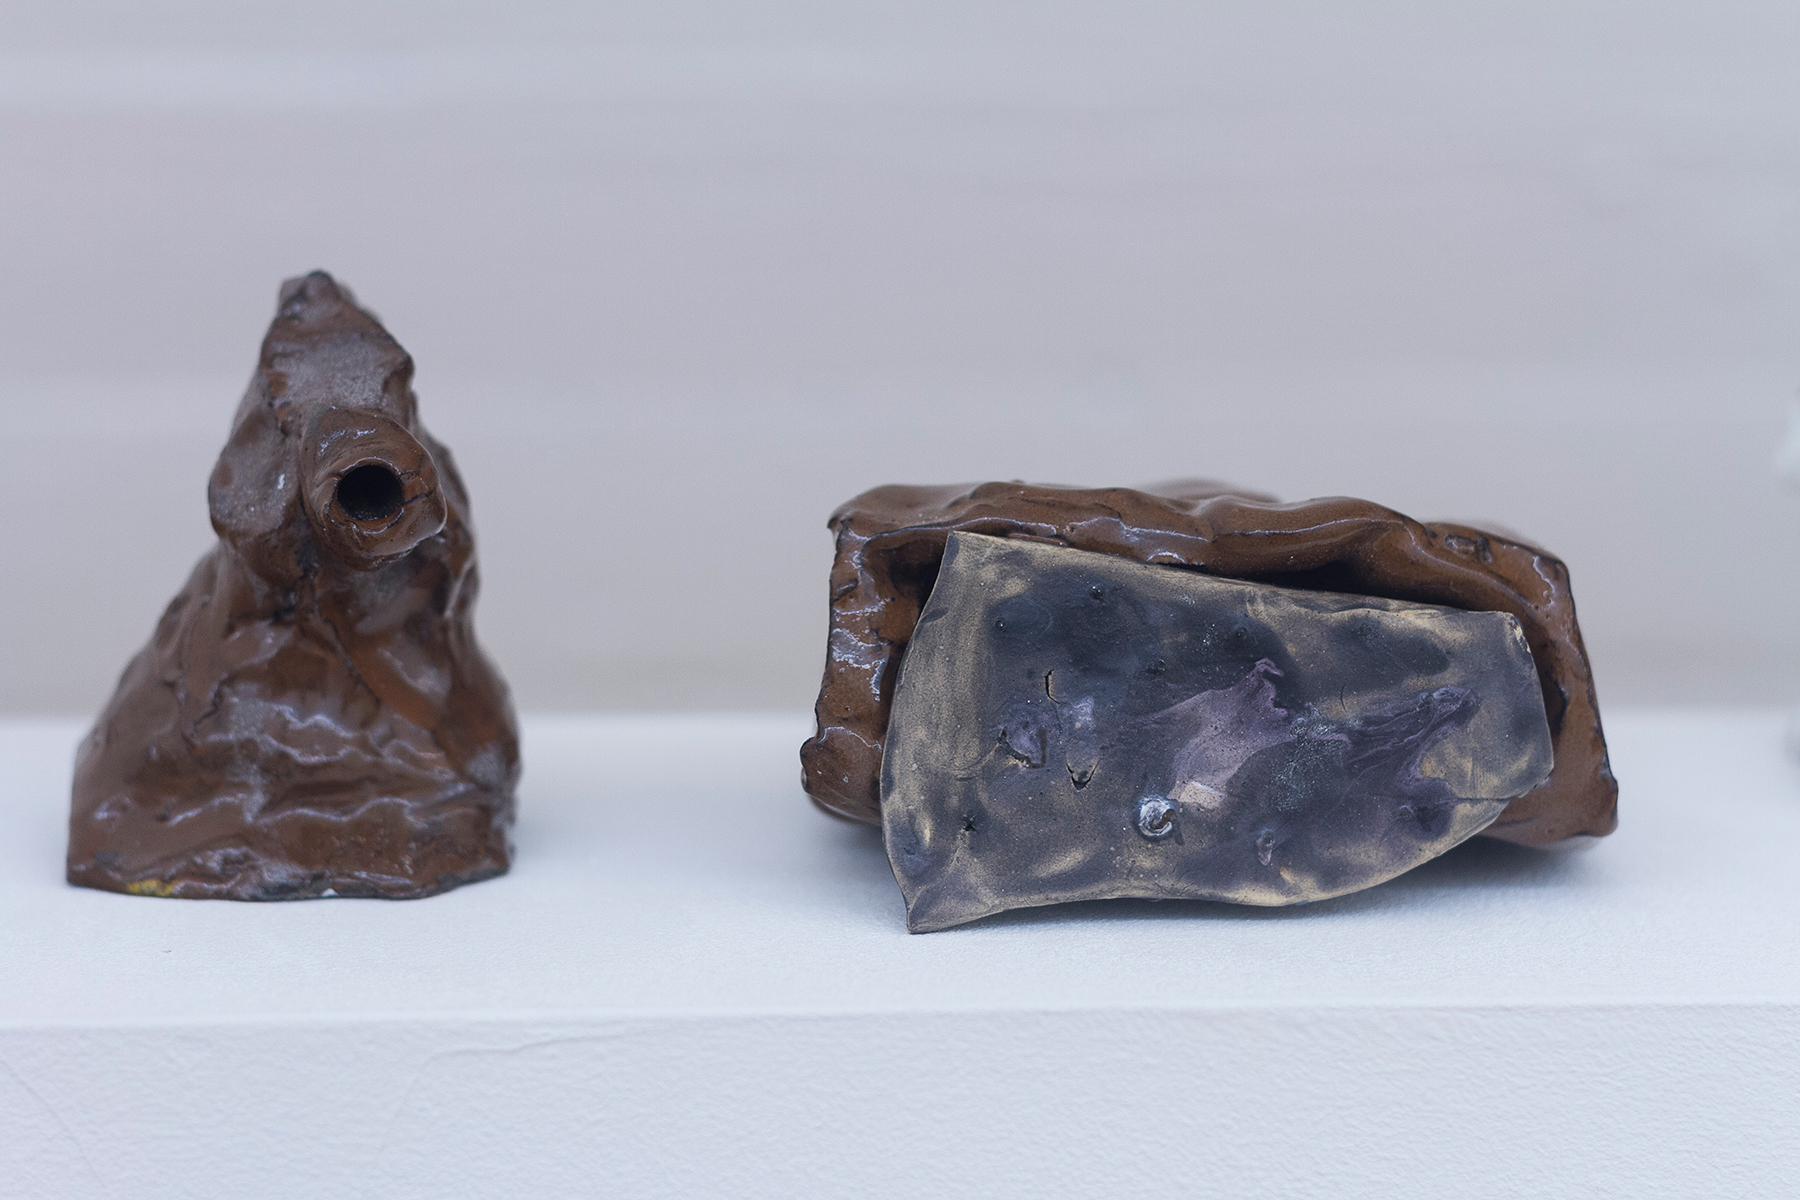 Adriano Costa, Shot Right Now, Please, 2018, glazed ceramic, 10 x 9 x 6 cm; The Gift, 2018, glazed ceramic, 11 x 6 x 11,5 cm